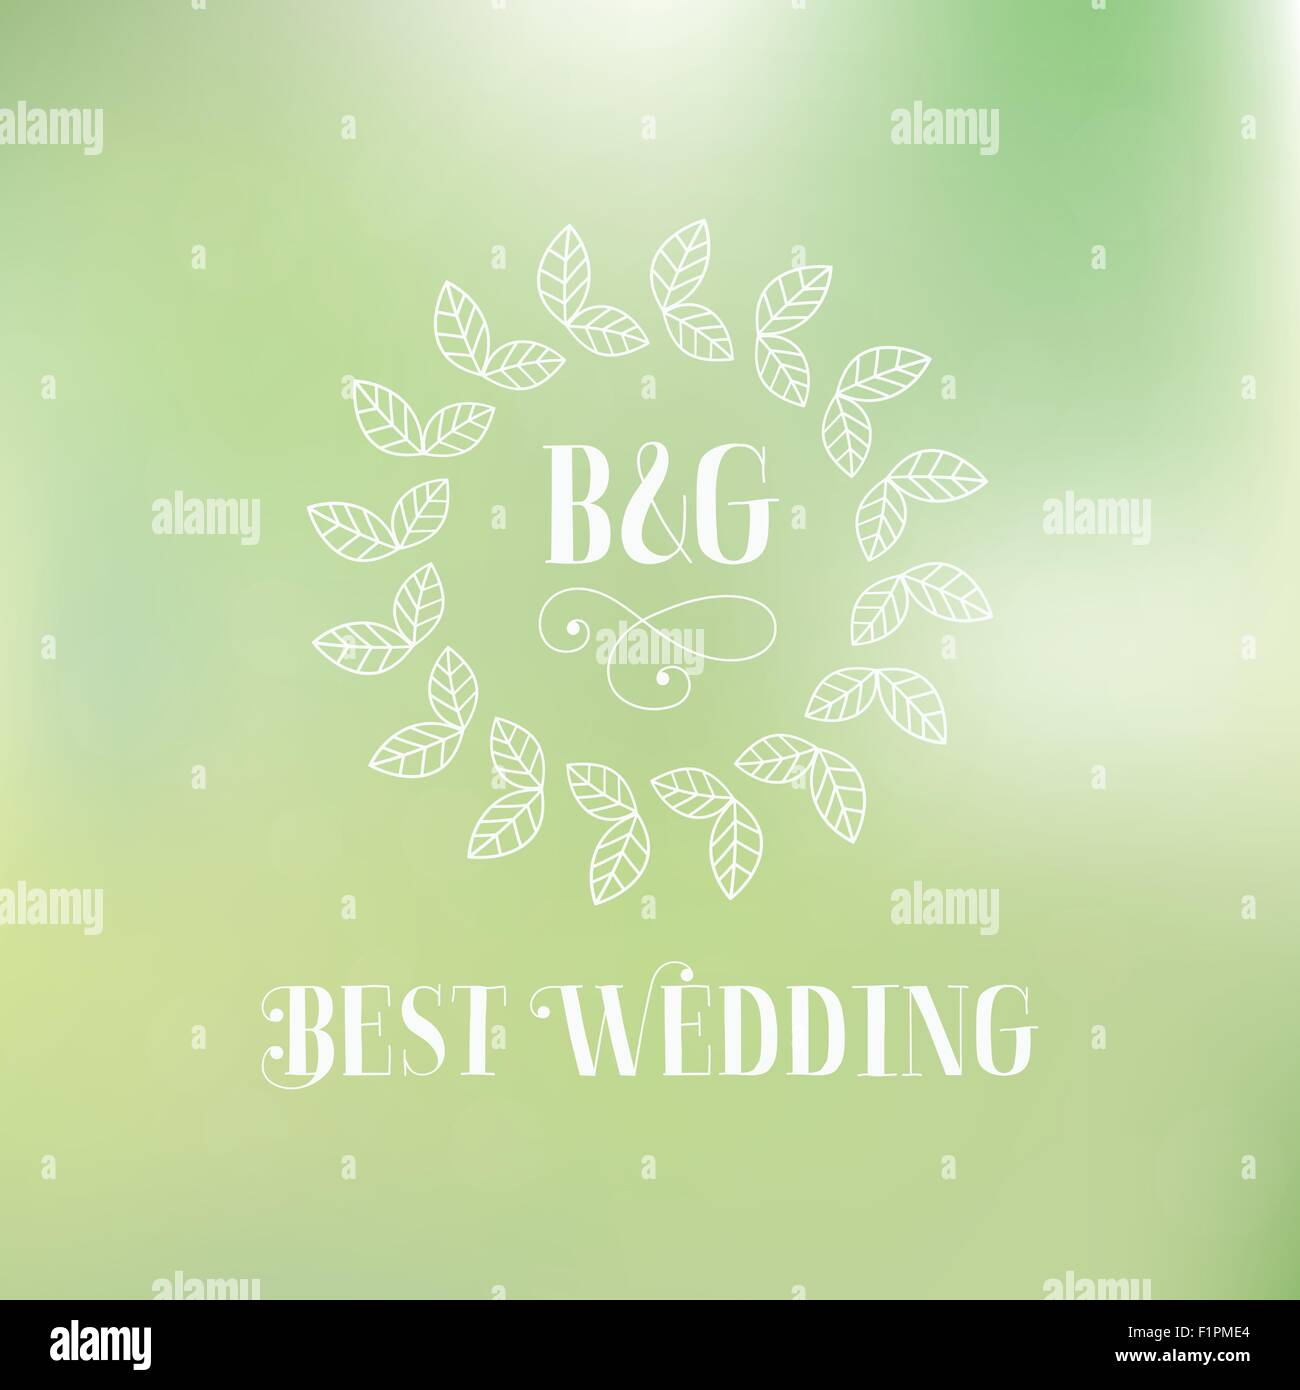 Best wedding label with floral detail Vector illustration - Stock Vector